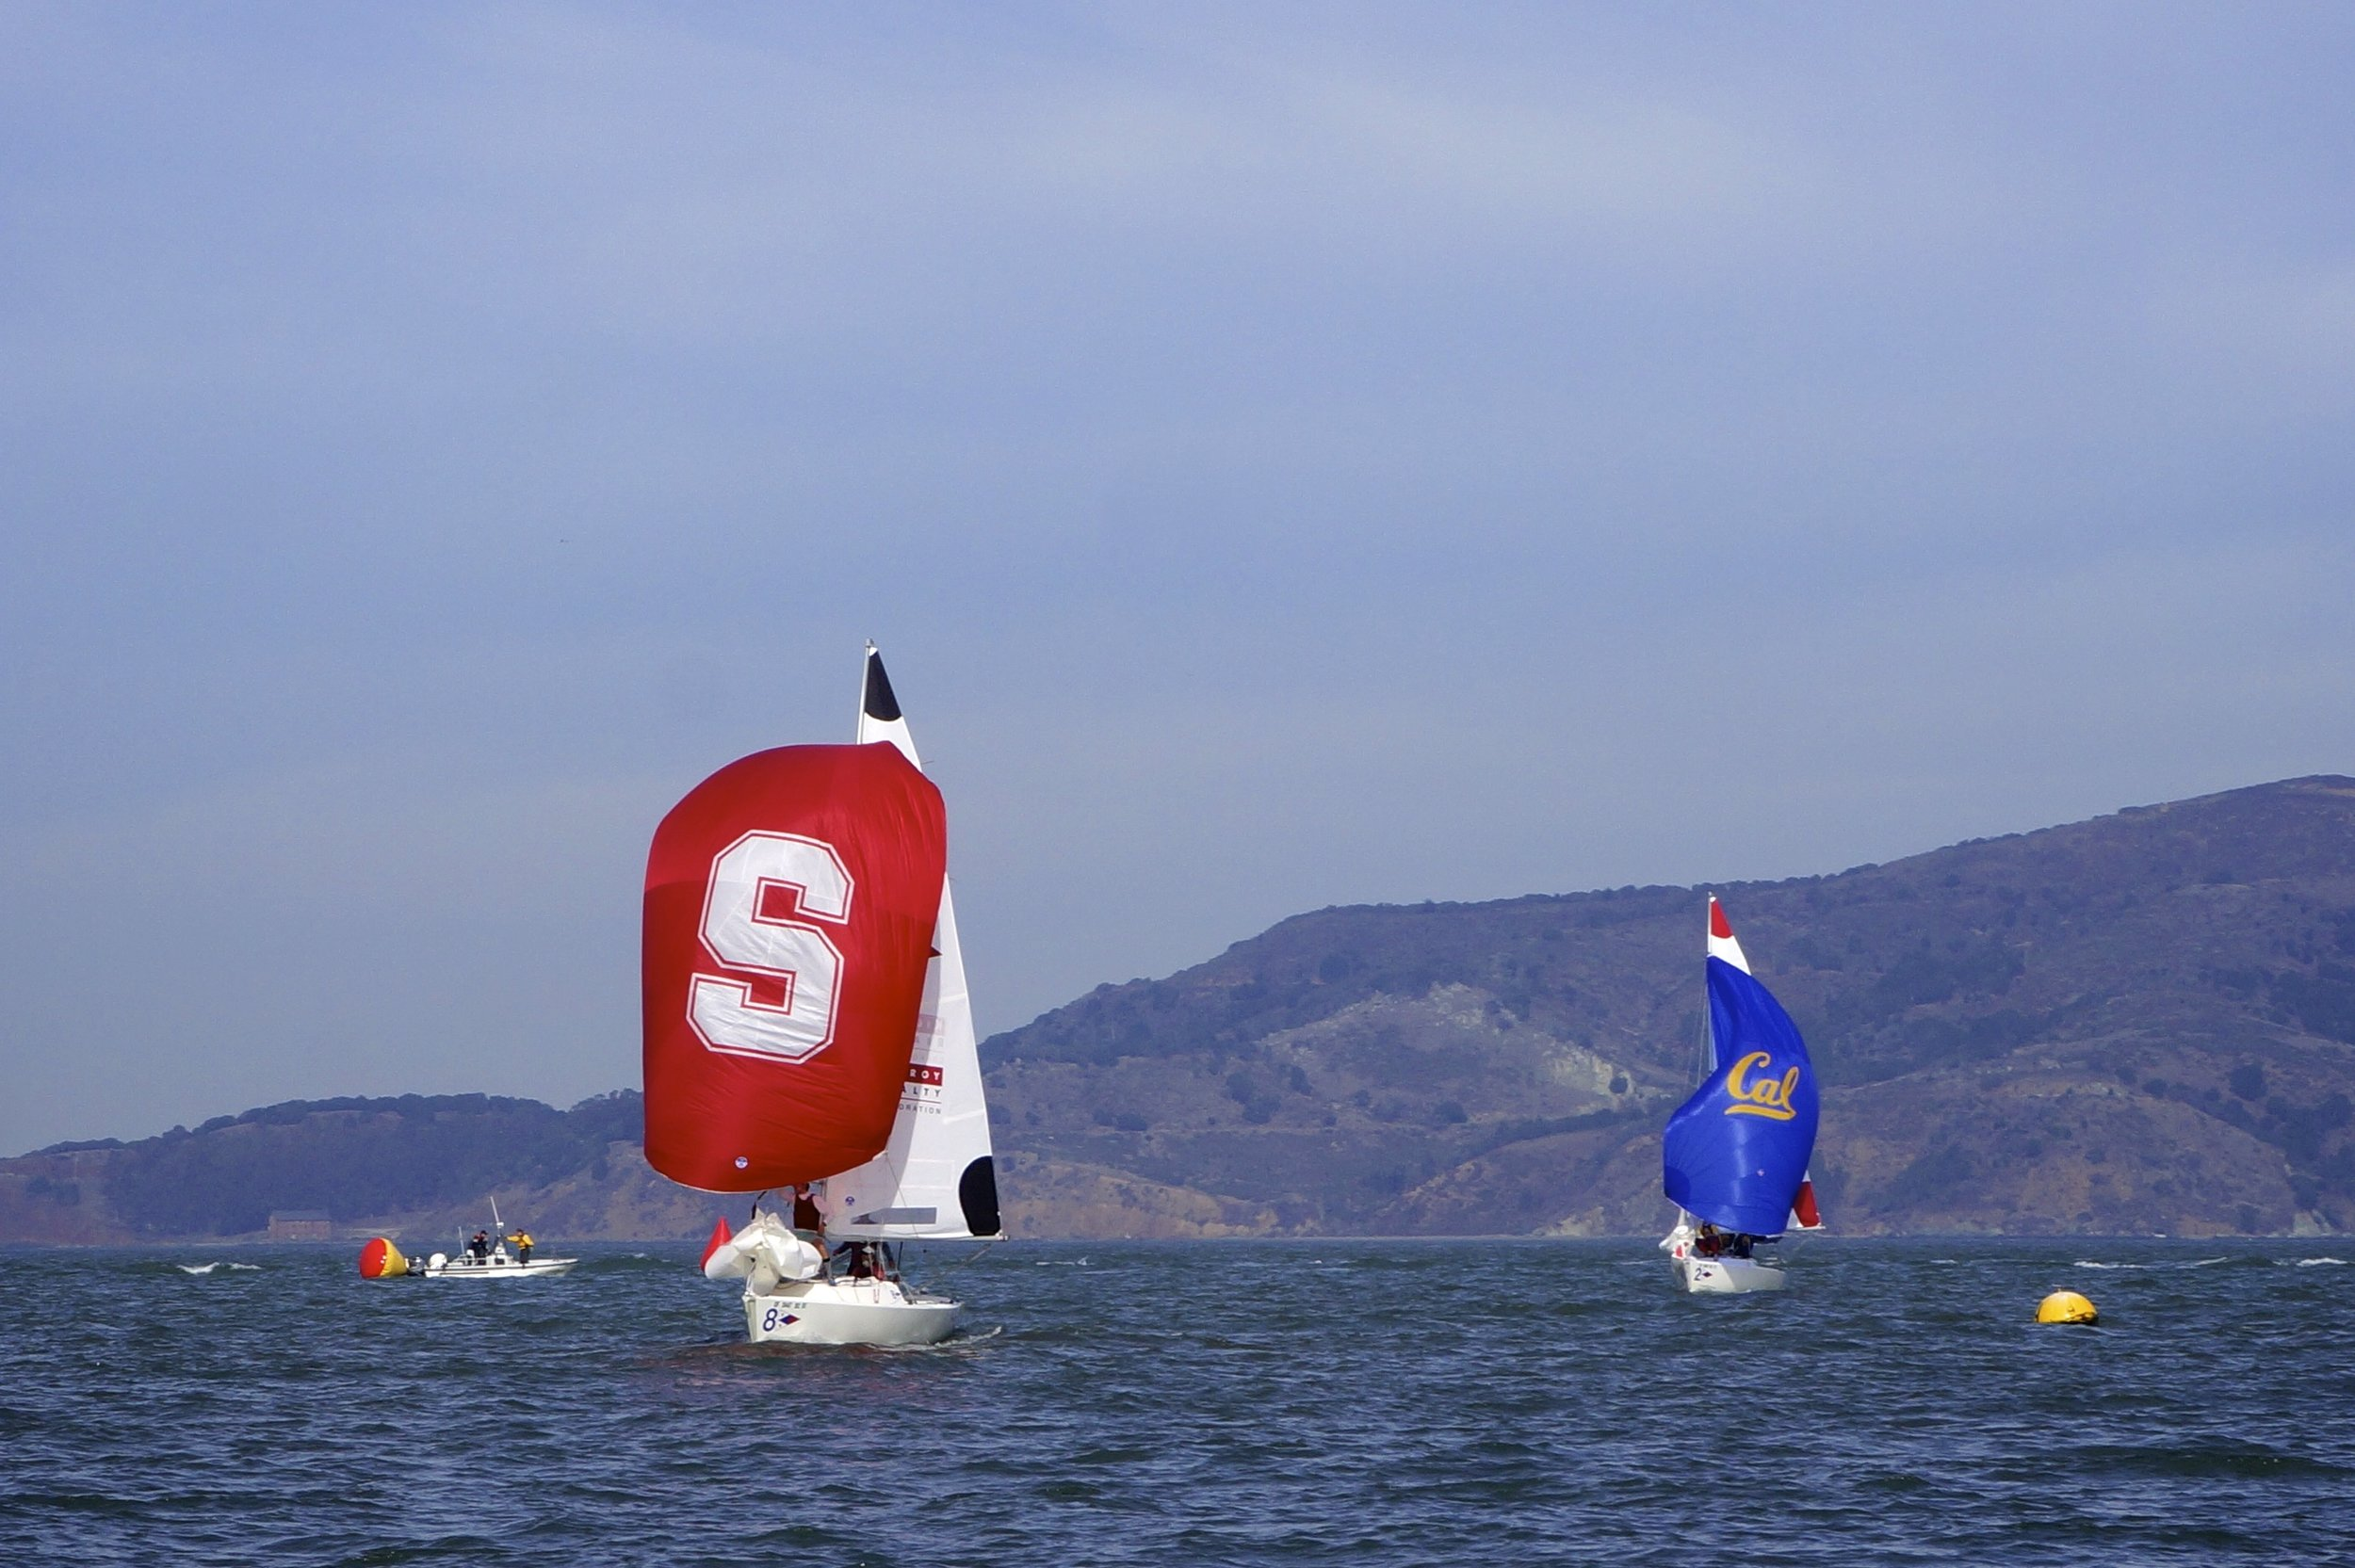 Stanford pulls ahead of UC Berkeley in a one-on-one match race, during the Big Sail on Thursday.